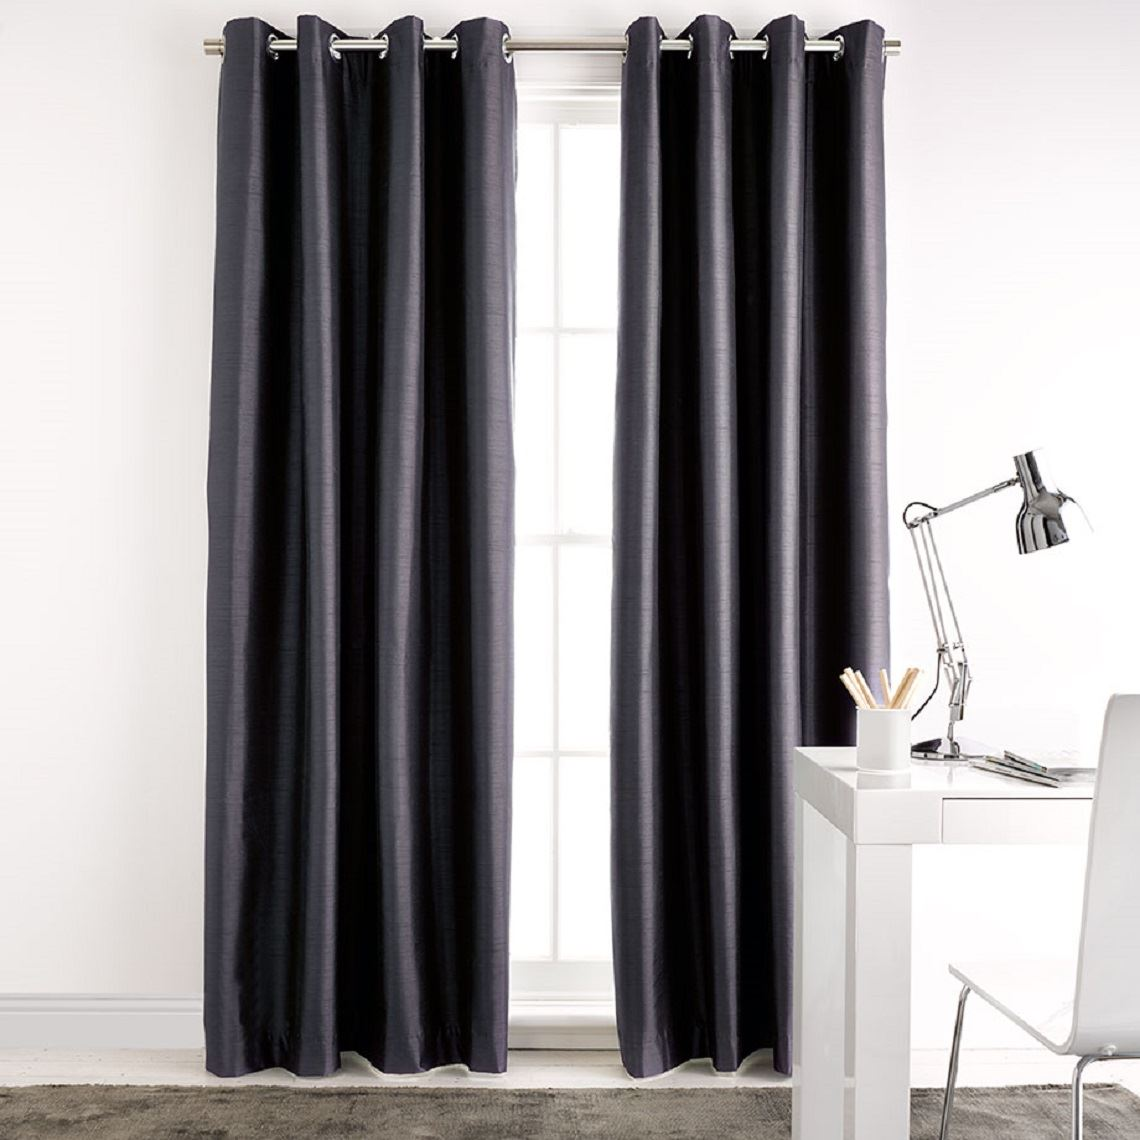 Aberdeen Blockout Eyelet Curtain Size W 140cm x D 1cm x H 230cm in Slate 100% Polyester/Acrylic Flock Coating/Stainless Steel Freedom by Freedom, a Curtains for sale on Style Sourcebook